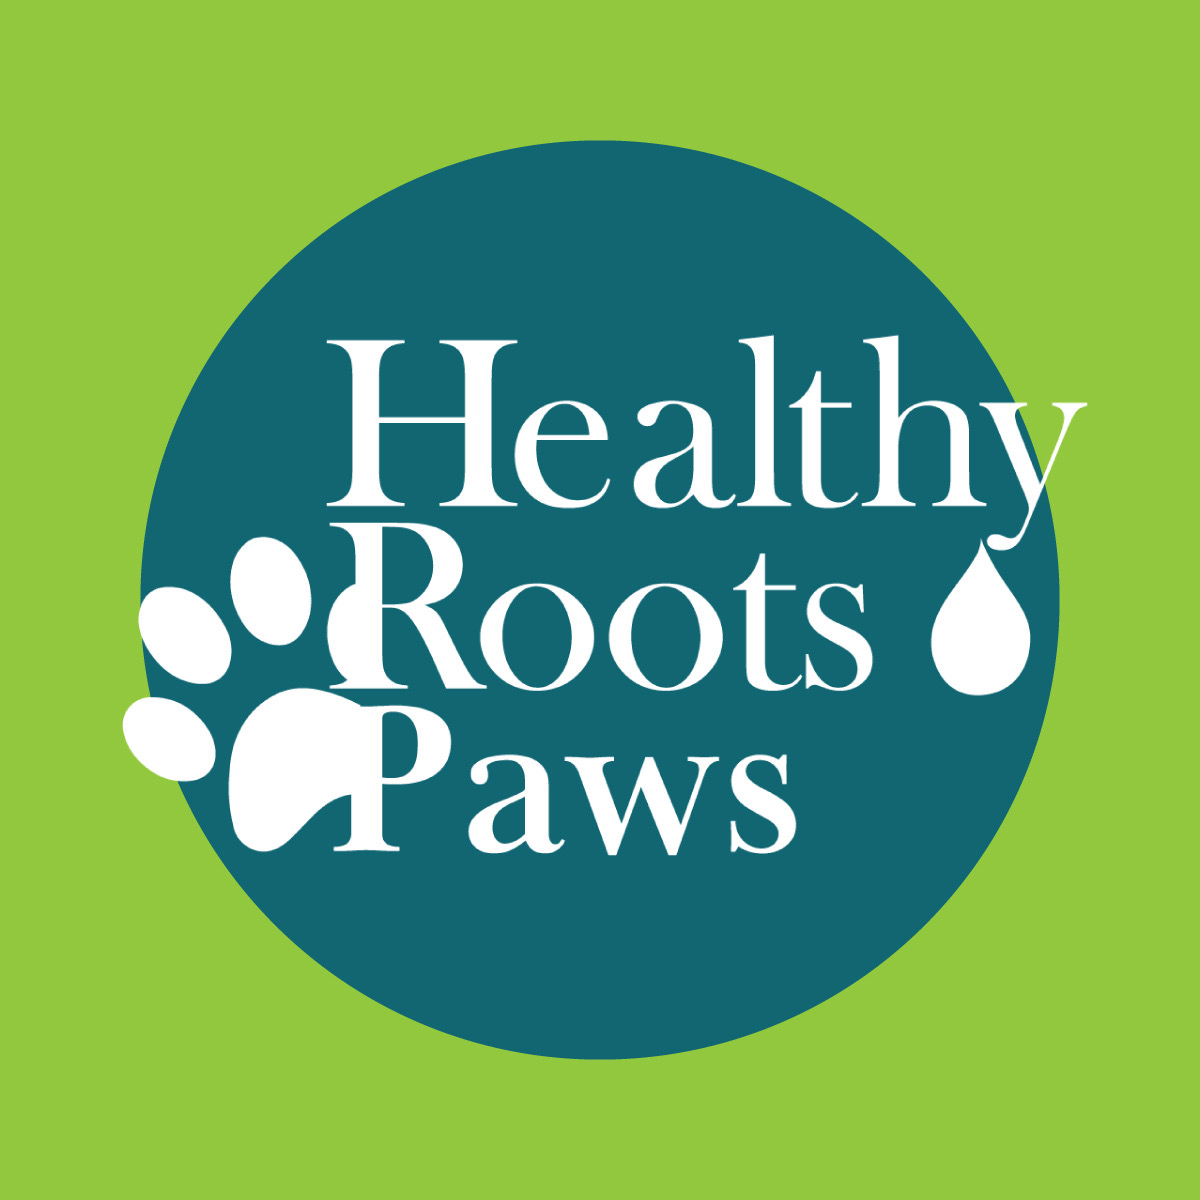 Healthy Roots Paws